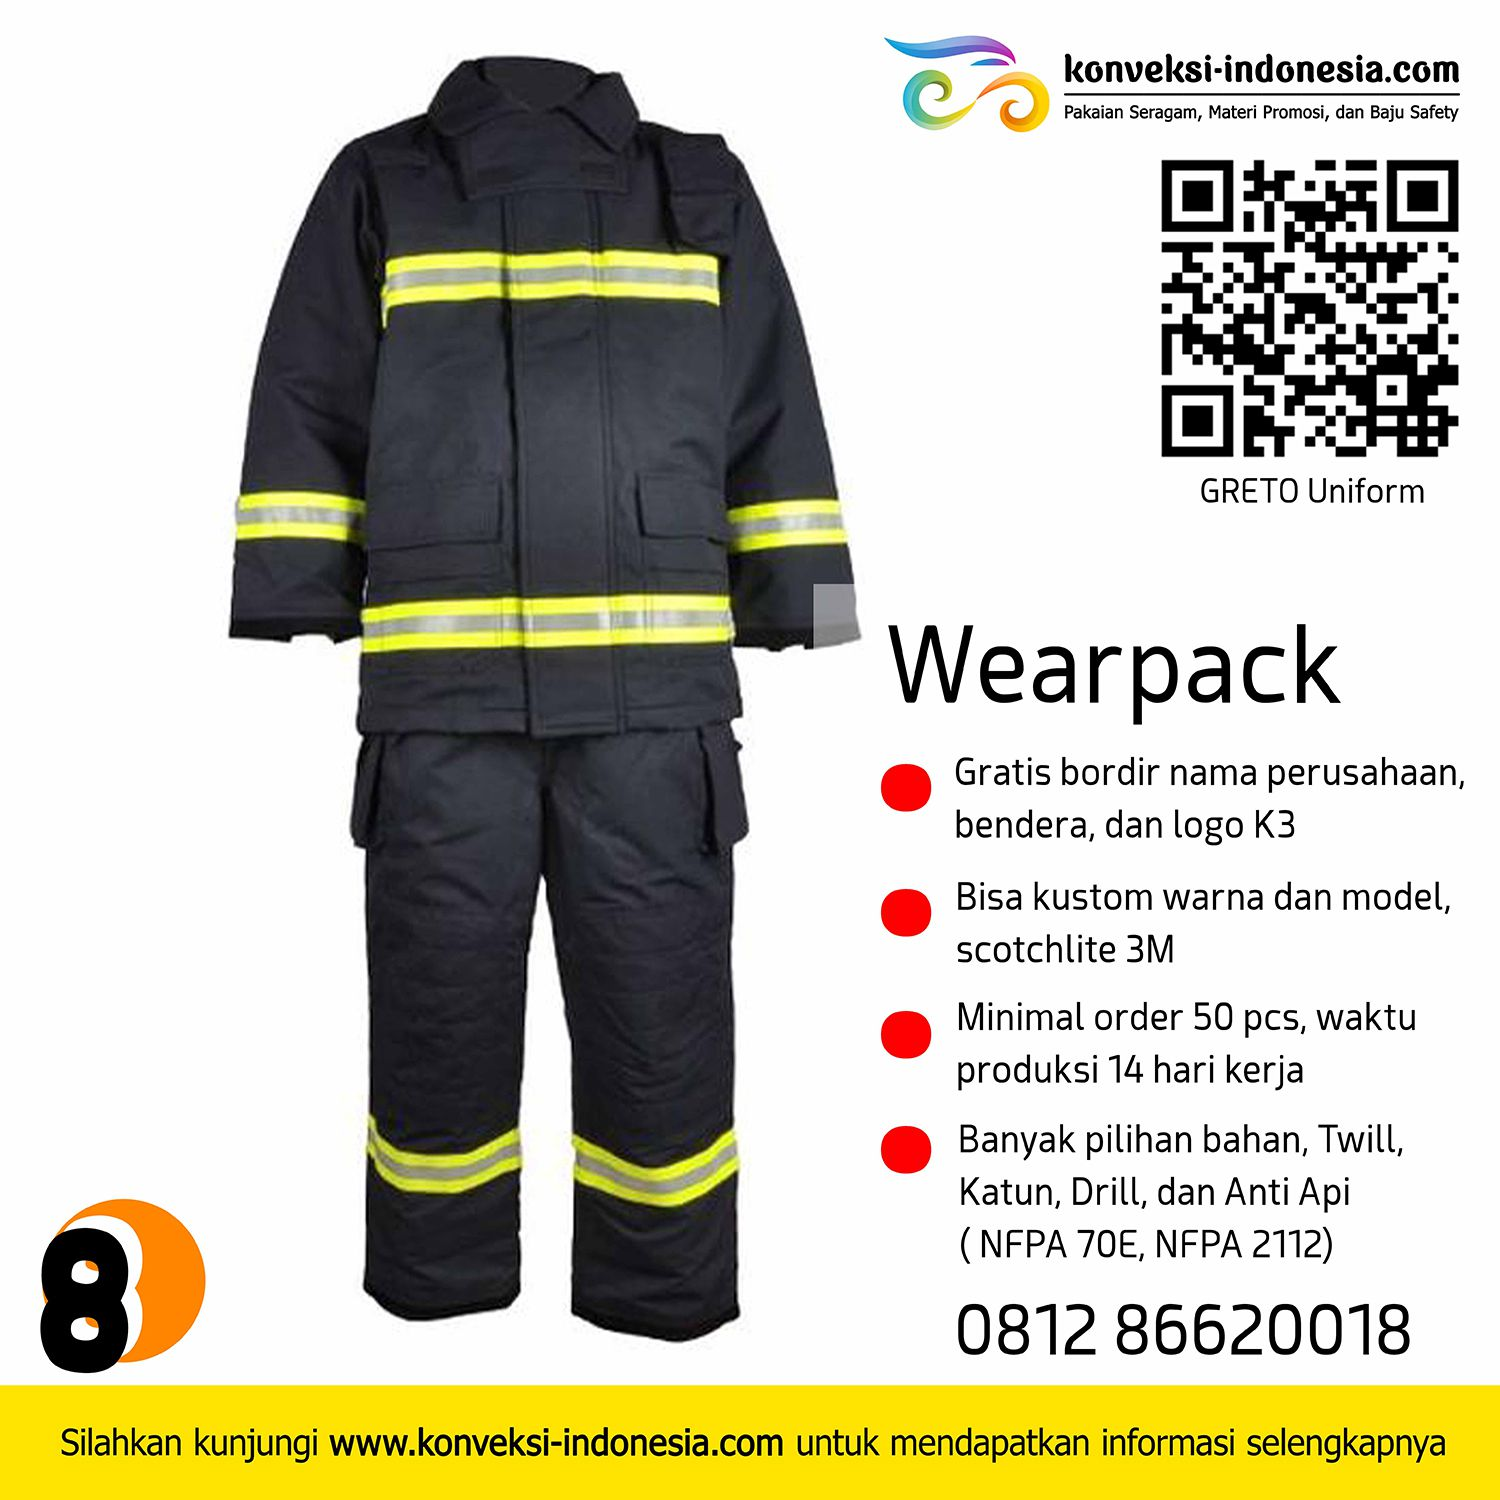 wearpack flame retardant, konveksi wearpack jakarta, wearpack anti api, wearpack coverall, wearpack tambang, greto uniform, baju wearpack, wearpack safety, pabrik wearpack, wearpack NFPA 70E, wearpack NFPA 2112, supplier wearpack, vendor wearpack, konfeksi wearpack, konveksi coverall, konveksi baju tambang, baju wearpack safety, vendor baju safety, baju safety jakarta, wearpack jakarta, wearpack bandung, wearpack bengkel, konveksi coverall, konveksi jakarta, baju tambang, baju lapangan.